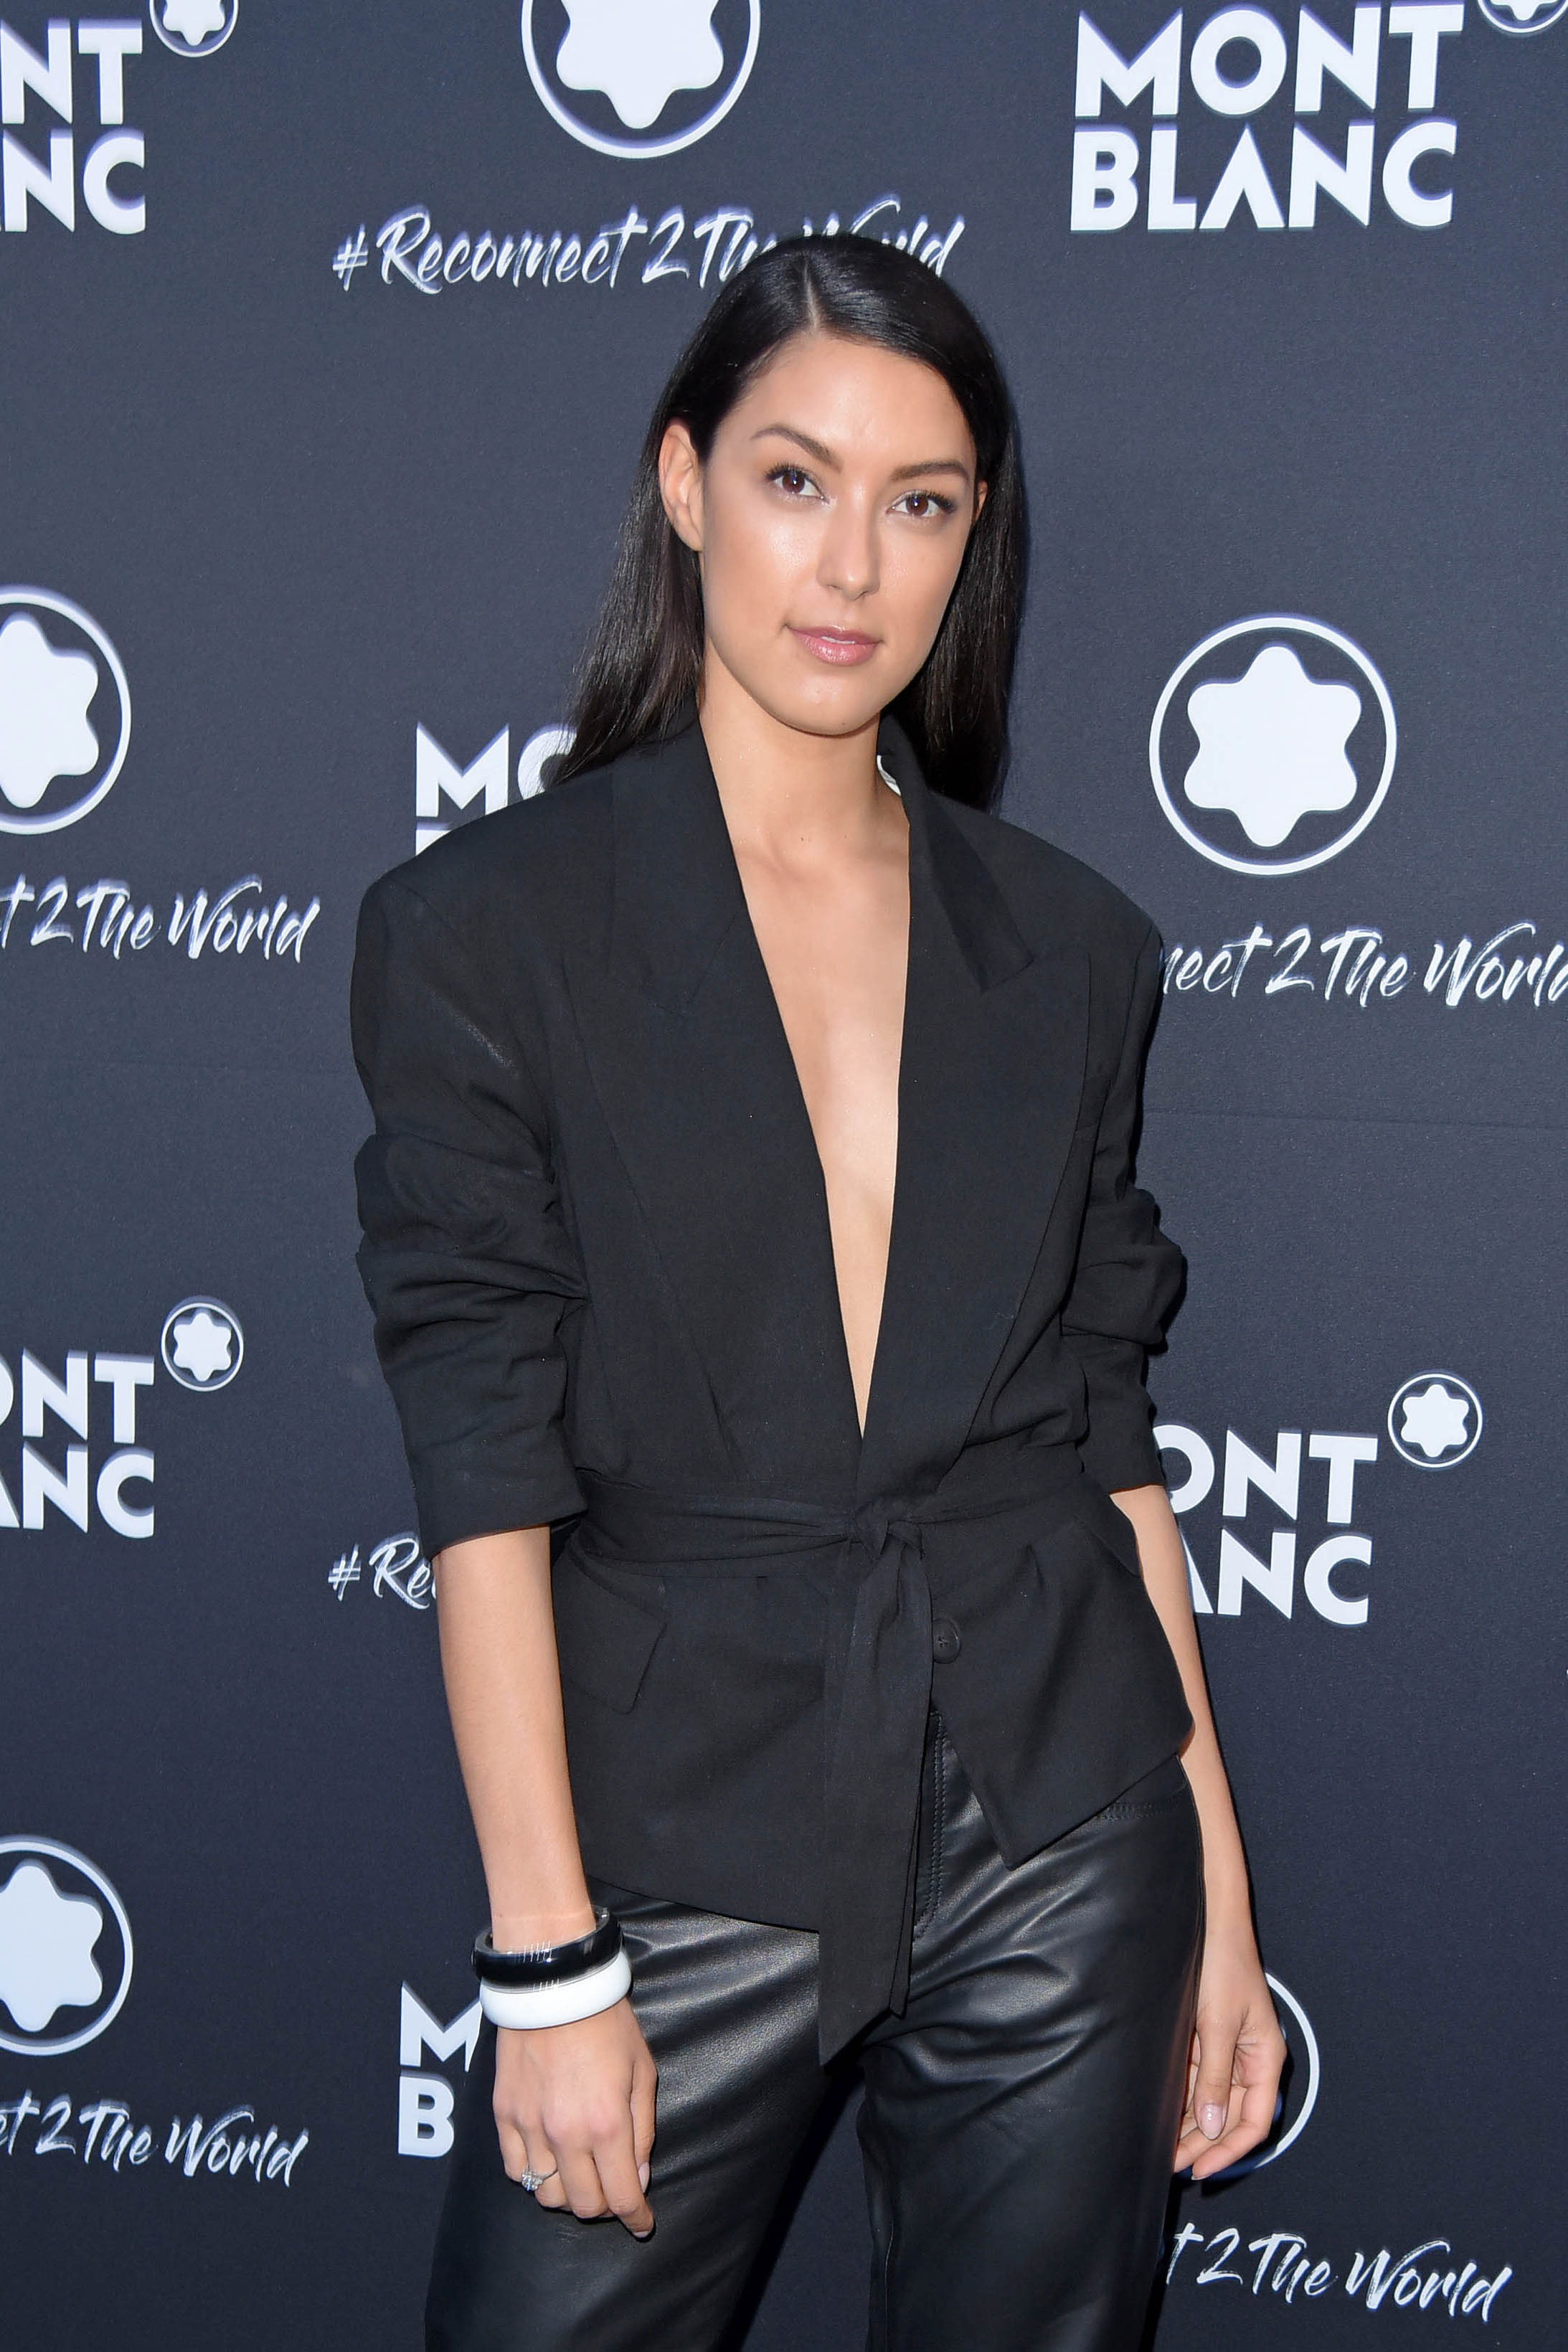 """Rebecca Mir attends Montblanc #Reconnect 2 The World Party im Metropol-Theater in Berlin-Mitte"""" (24."""